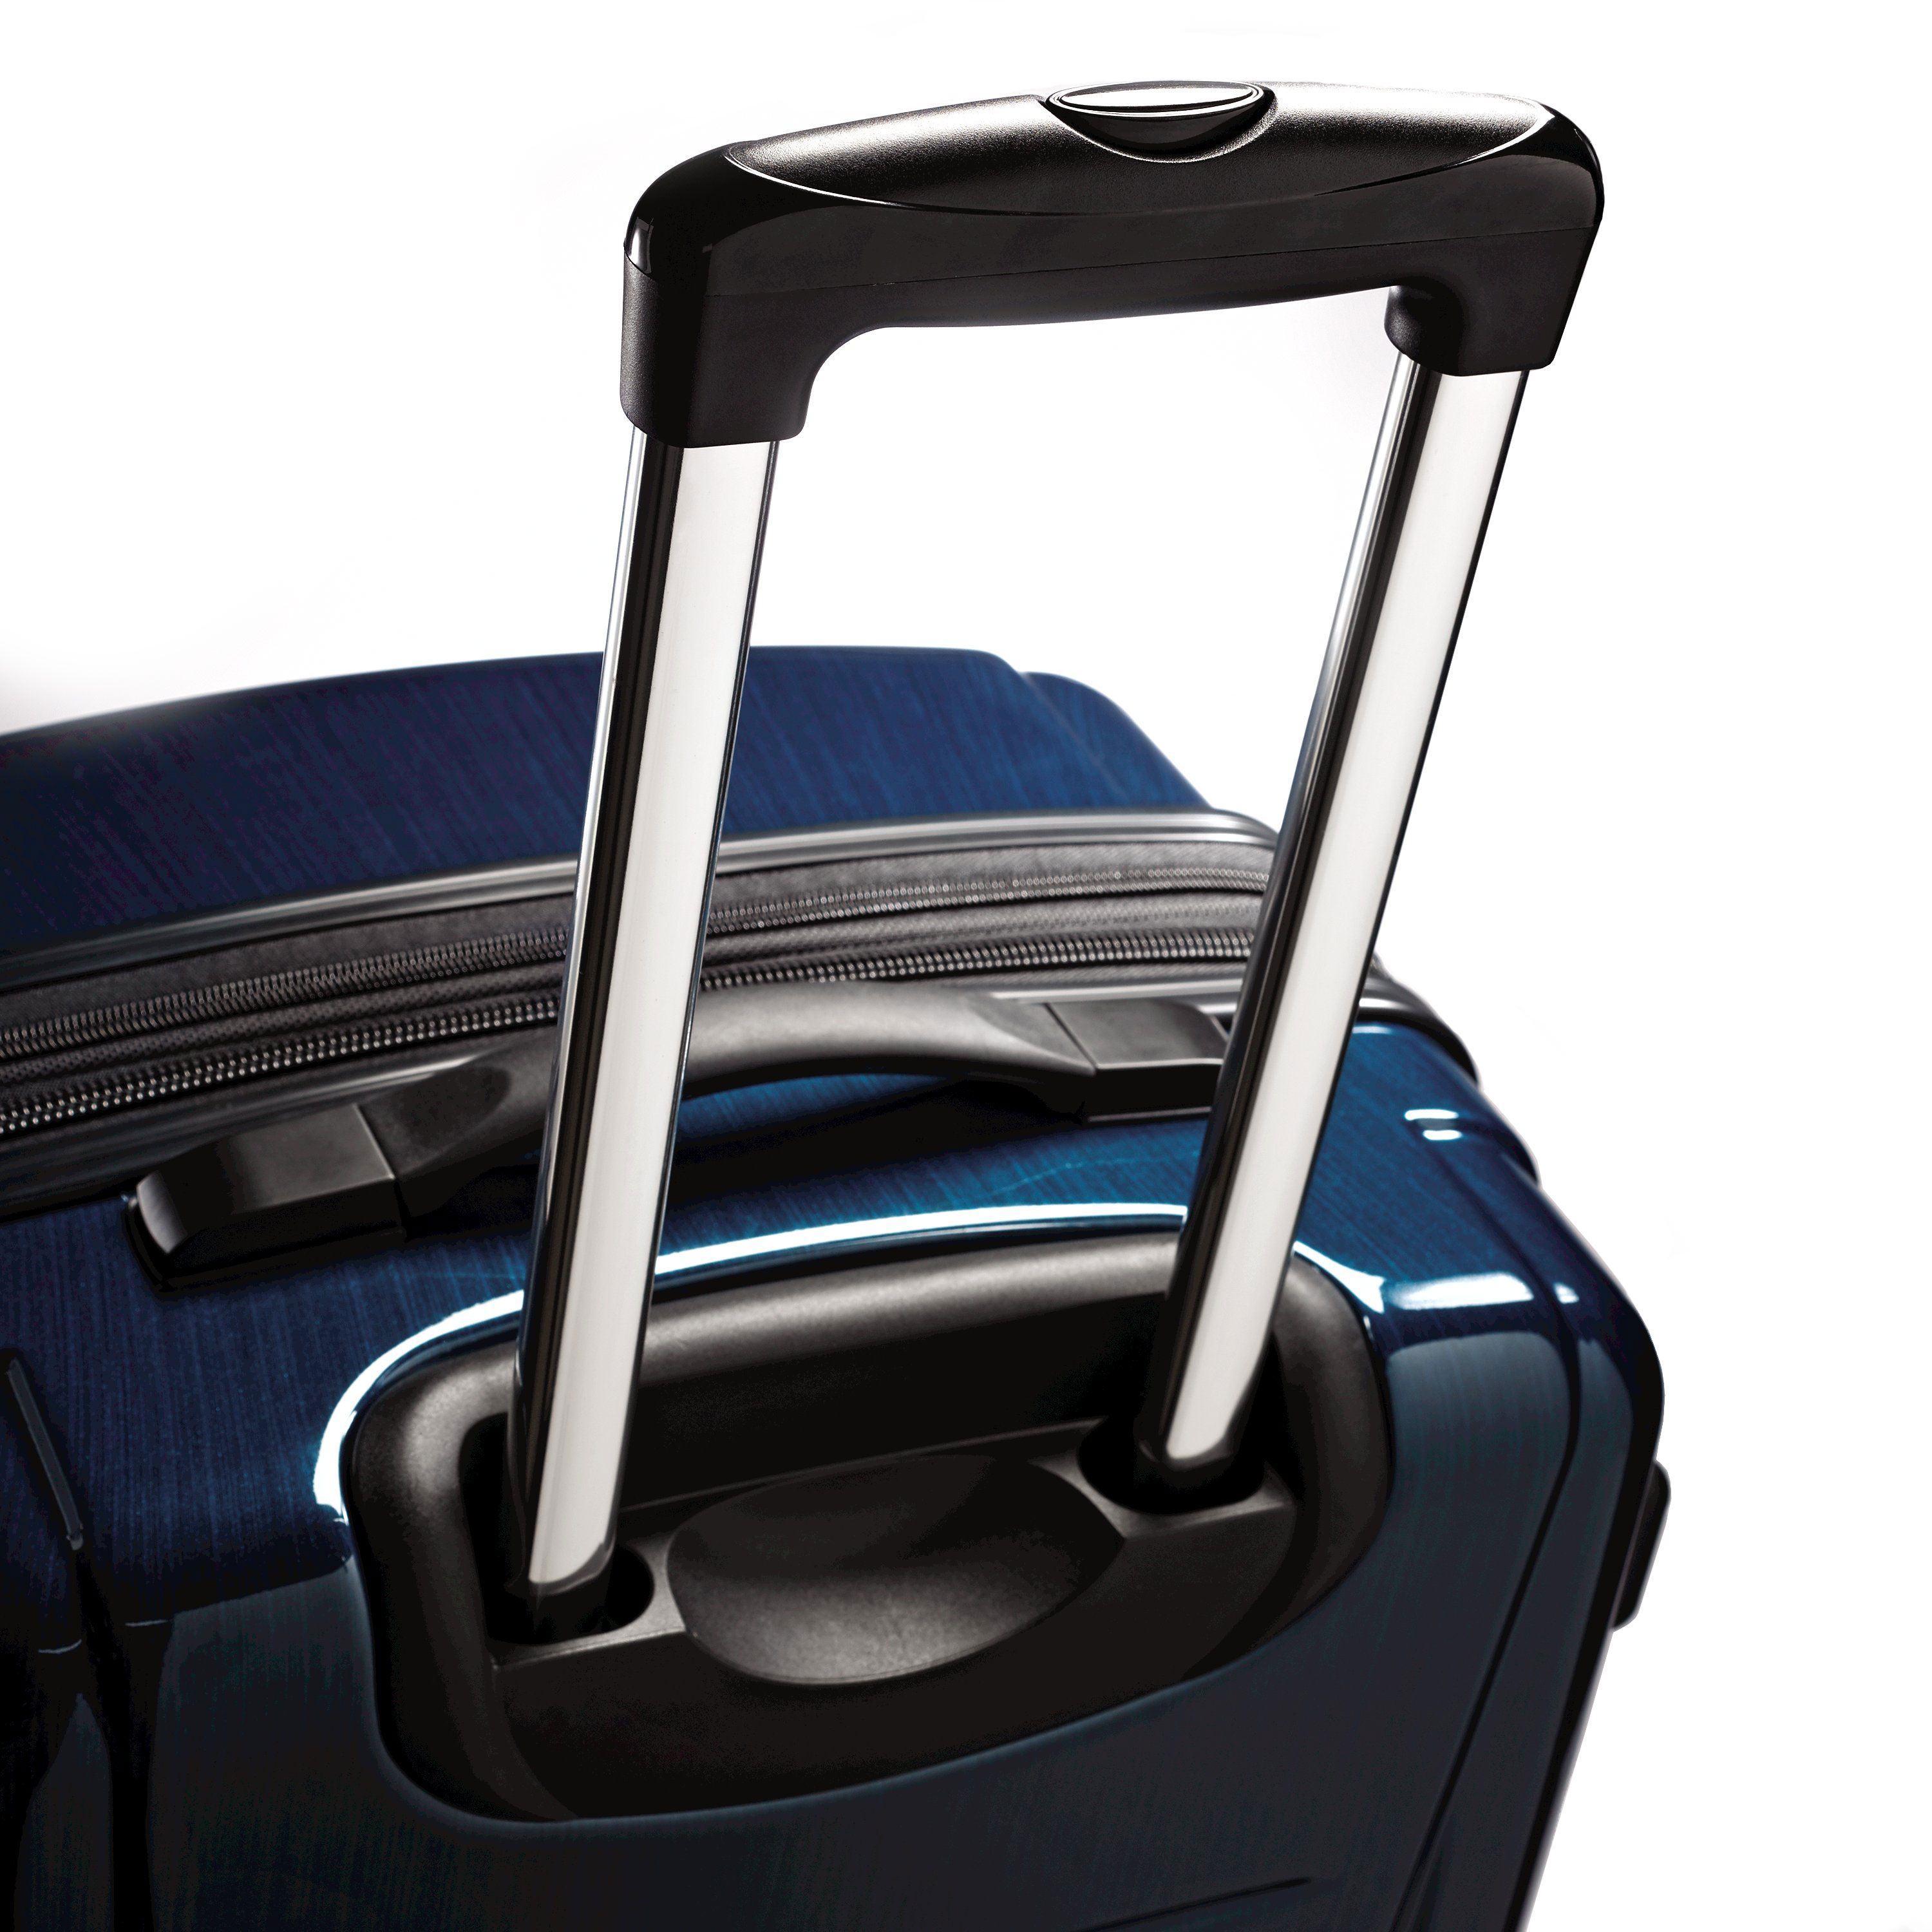 Samsonite-Winfield-2-Fashion-Spinner-Luggage thumbnail 18